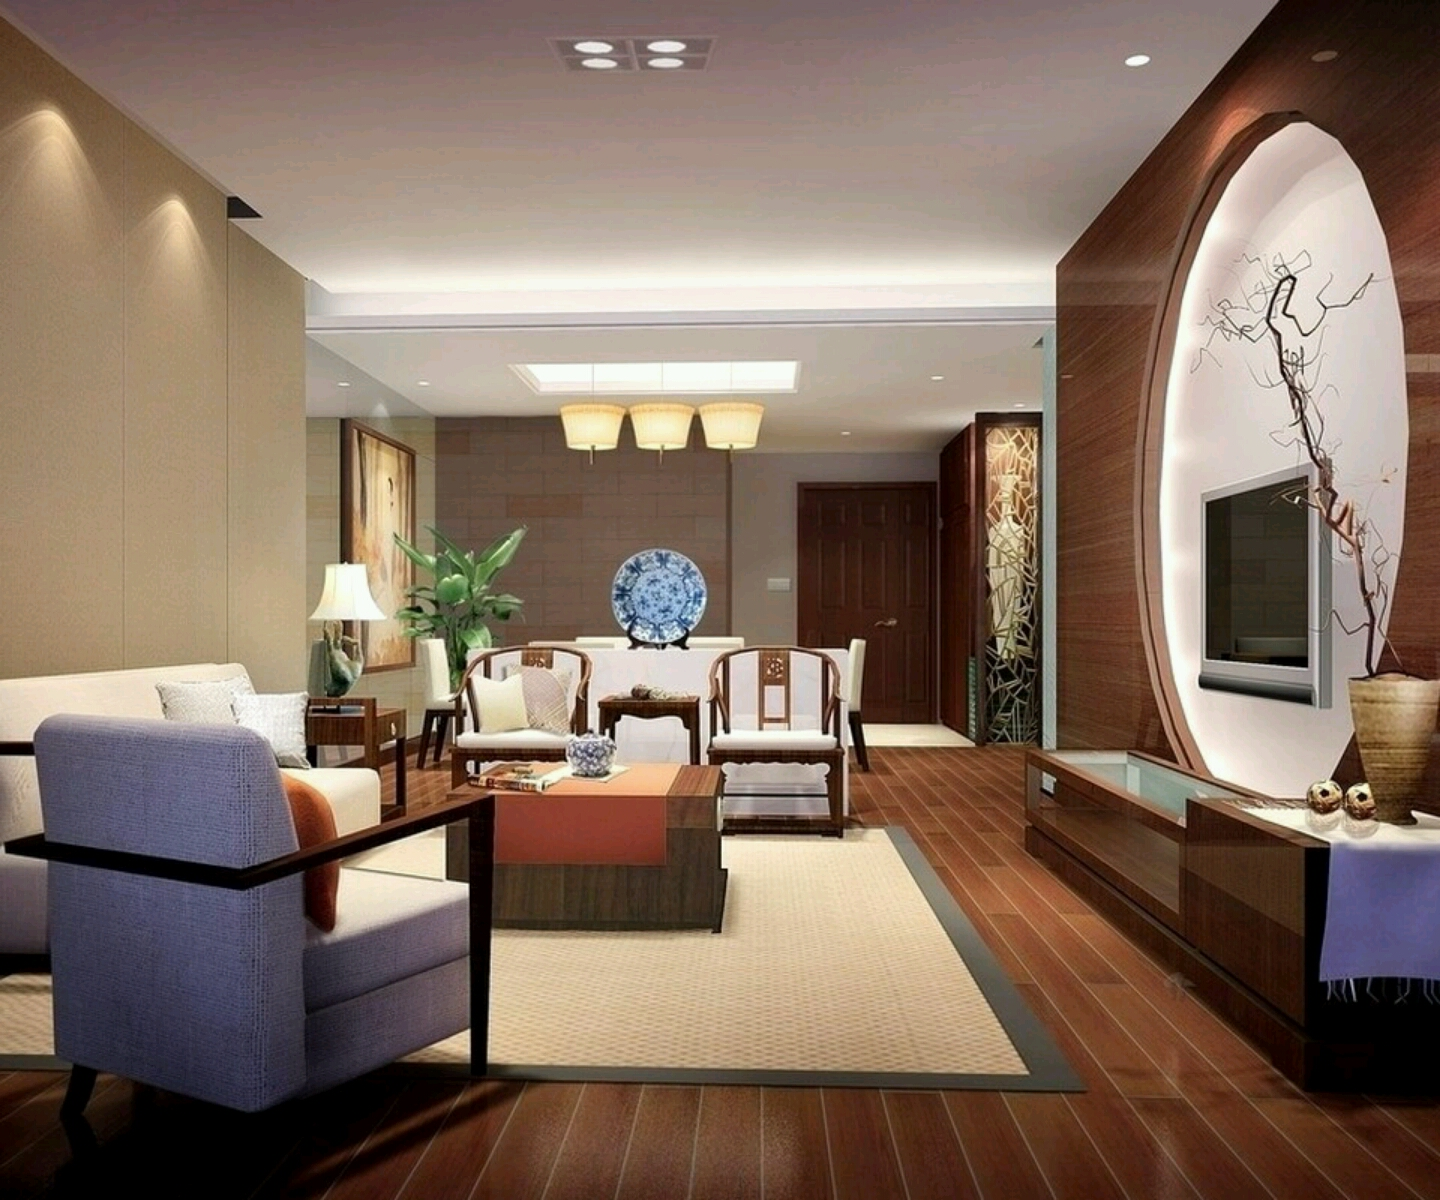 Luxury homes interior decoration living room designs ideas for Interior home decoration